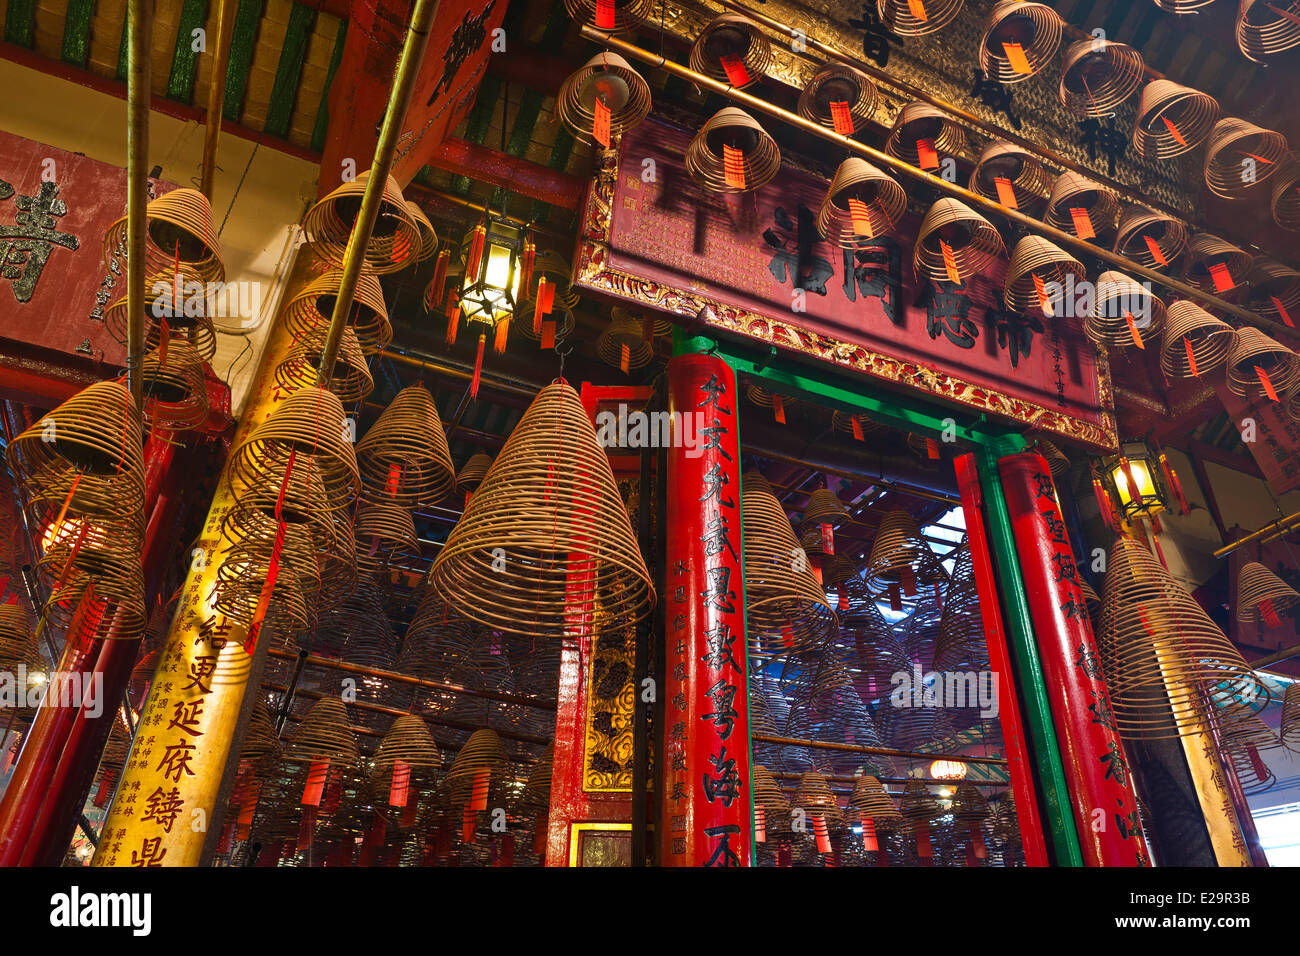 China, Honk-Kong island, Hollywood road, Man Mo chinese temple - Stock Image